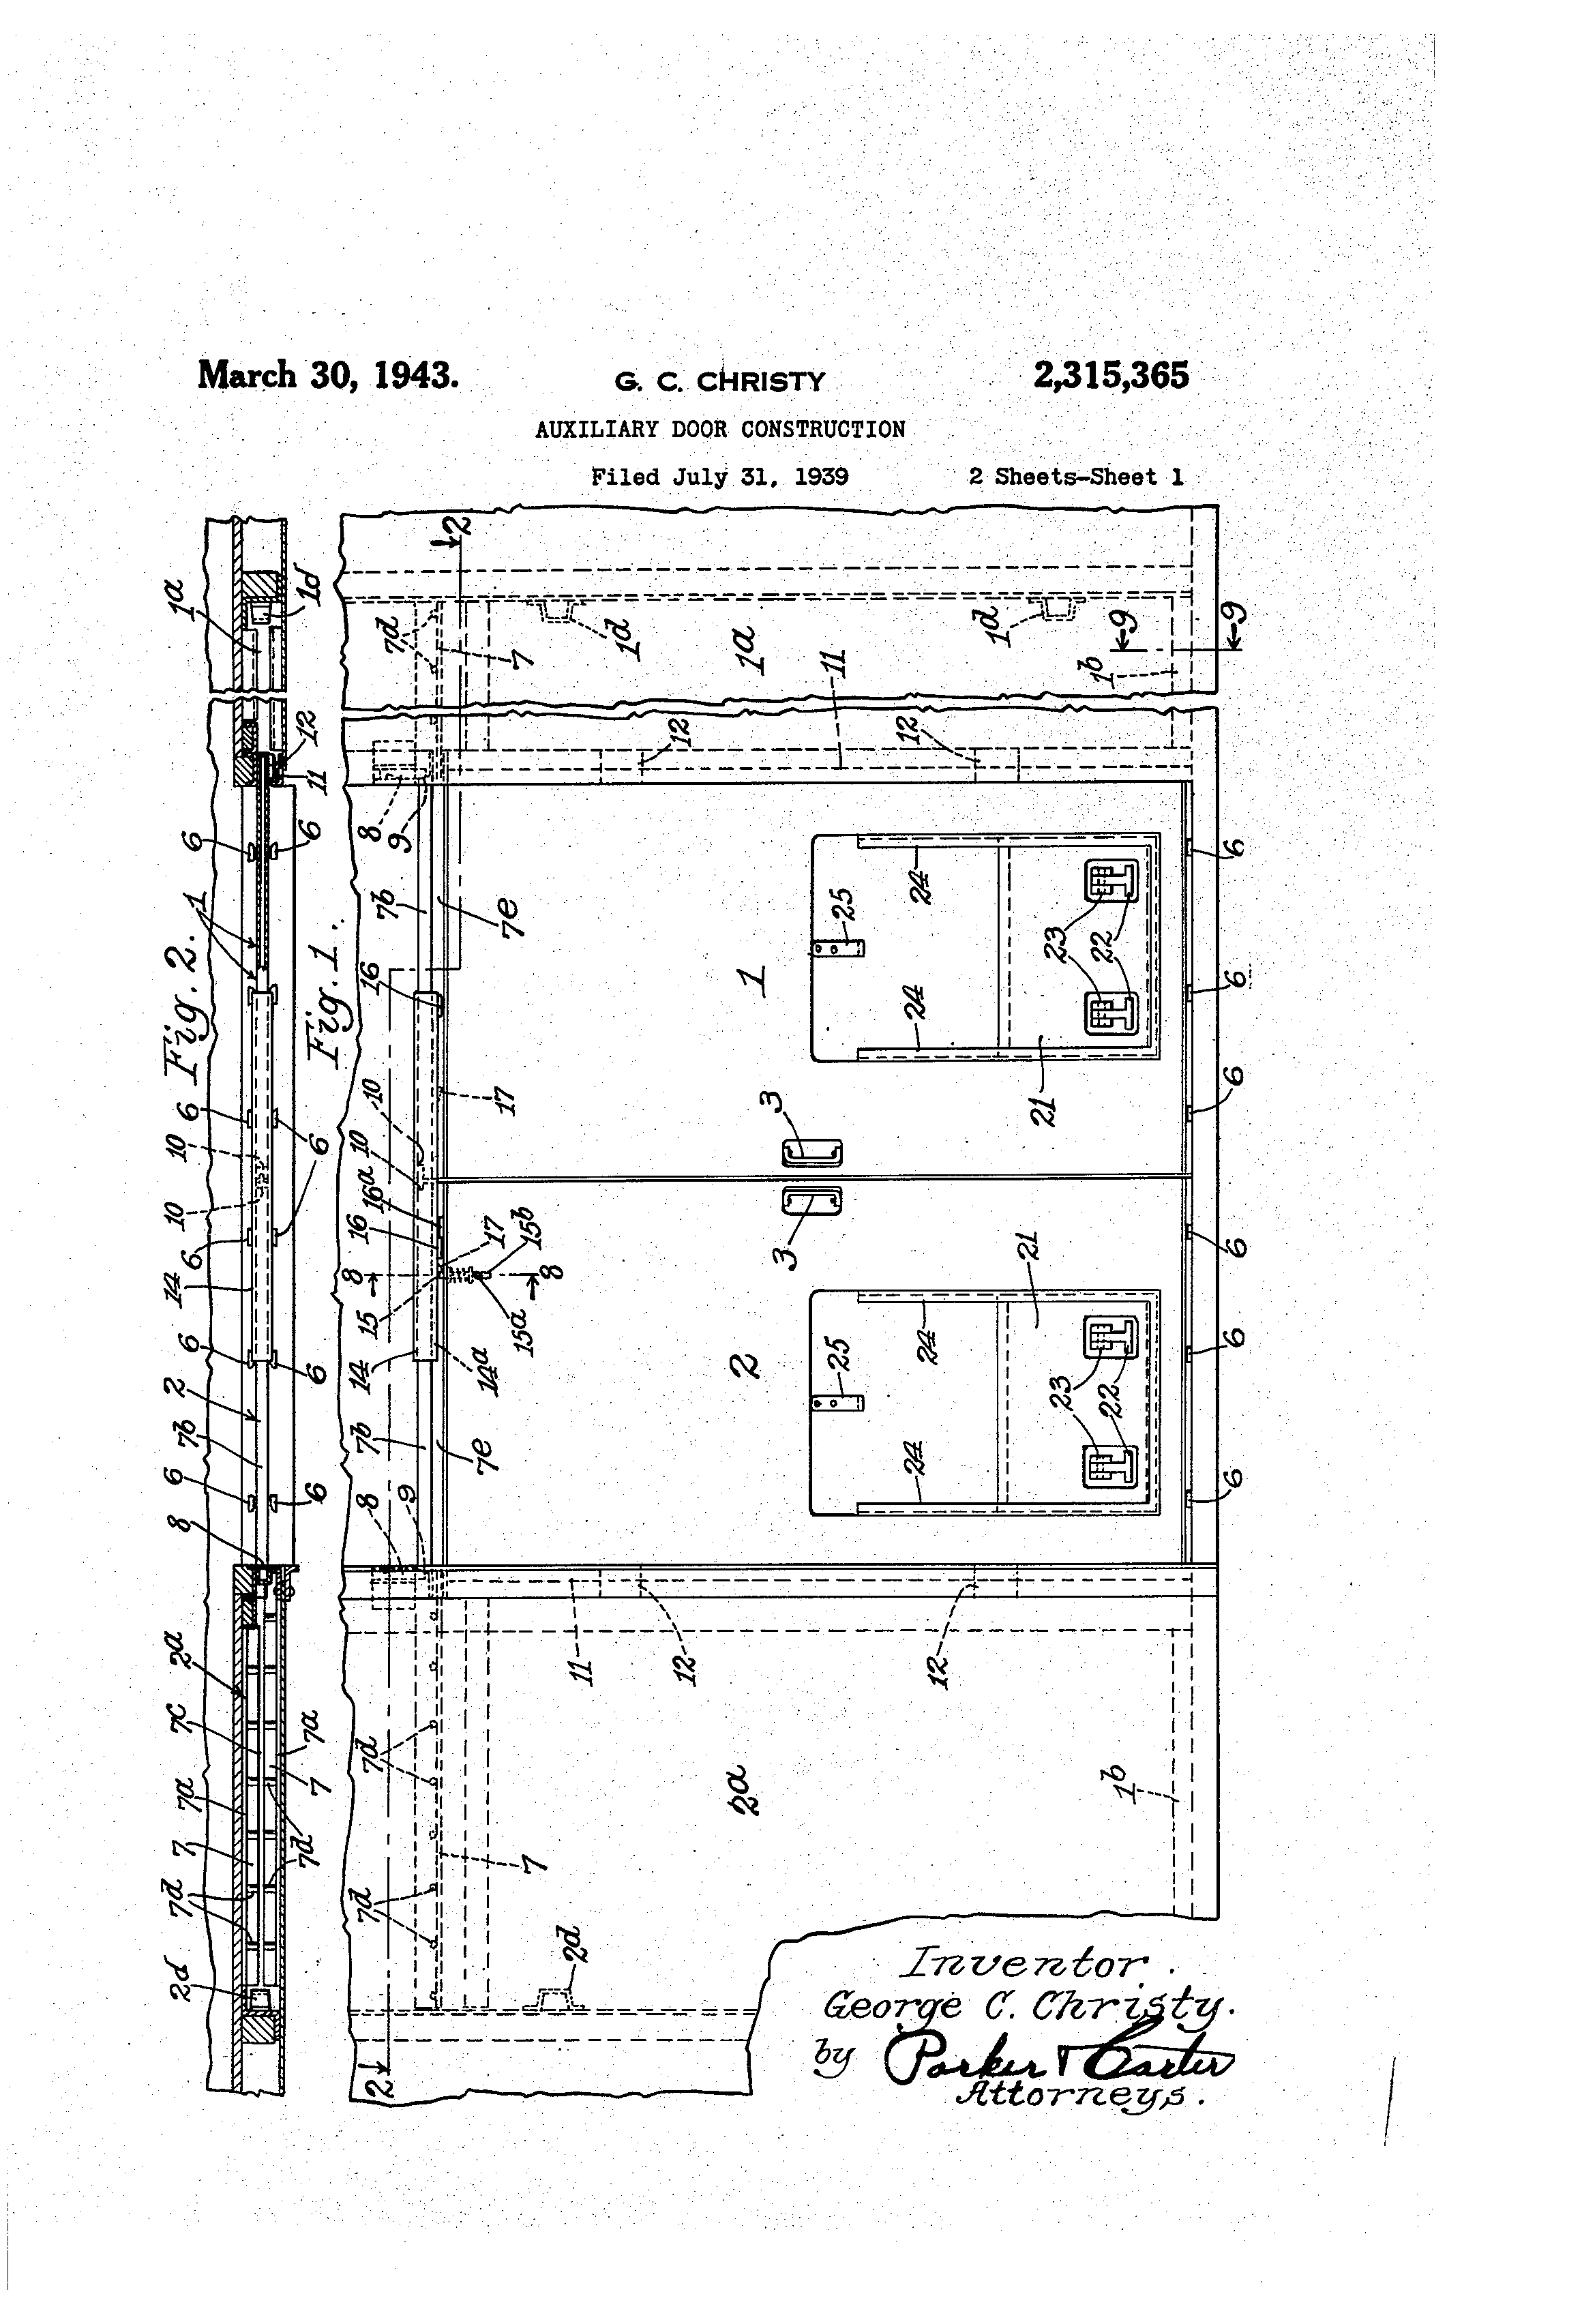 Us2315365a - Auxiliary Door Construction